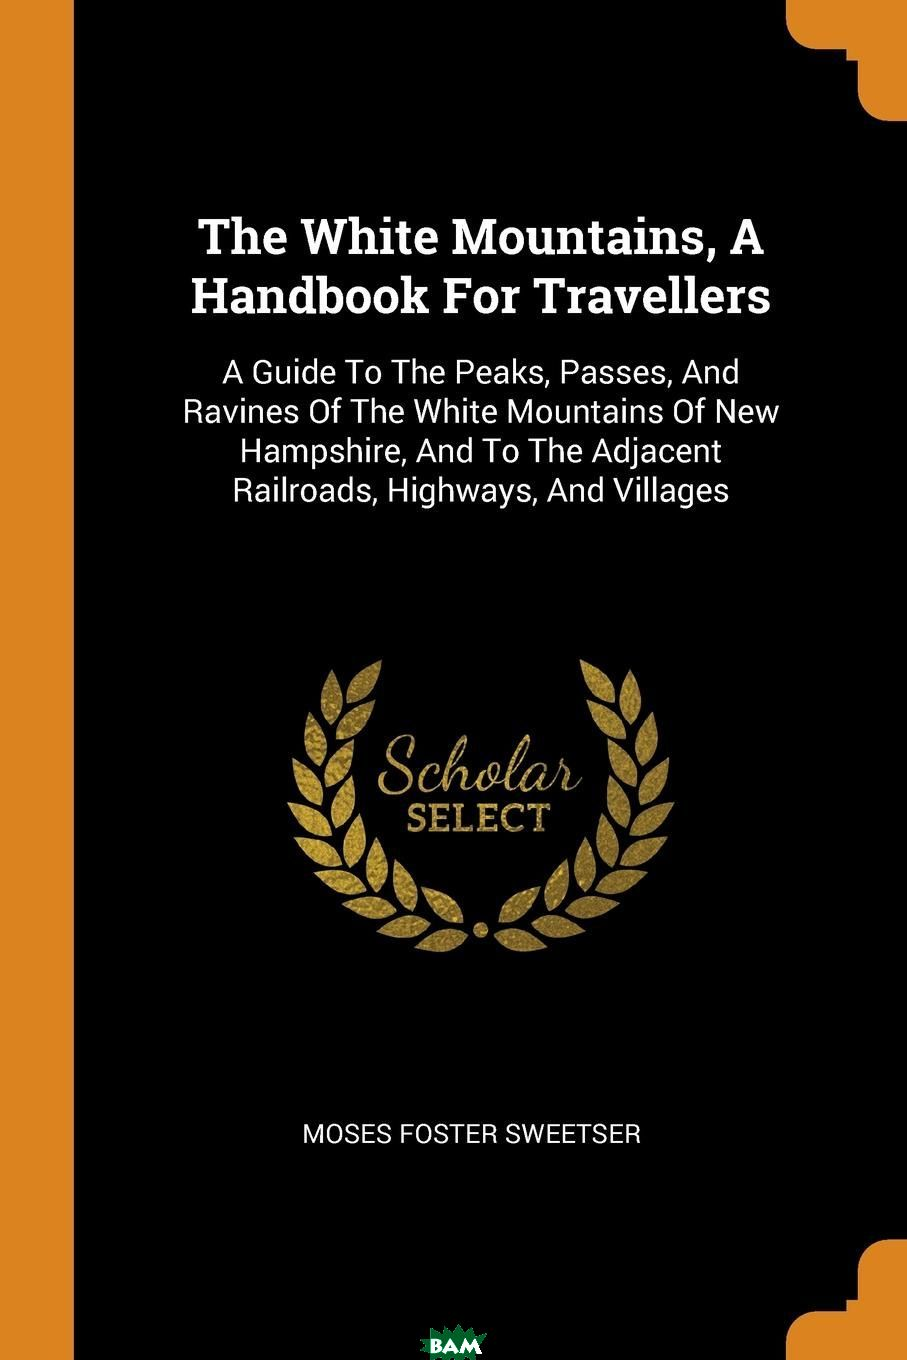 The White Mountains, A Handbook For Travellers. A Guide To The Peaks, Passes, And Ravines Of The White Mountains Of New Hampshire, And To The Adjacent Railroads, Highways, And Villages, Moses Foster Sweetser, 9780353327962  - купить со скидкой